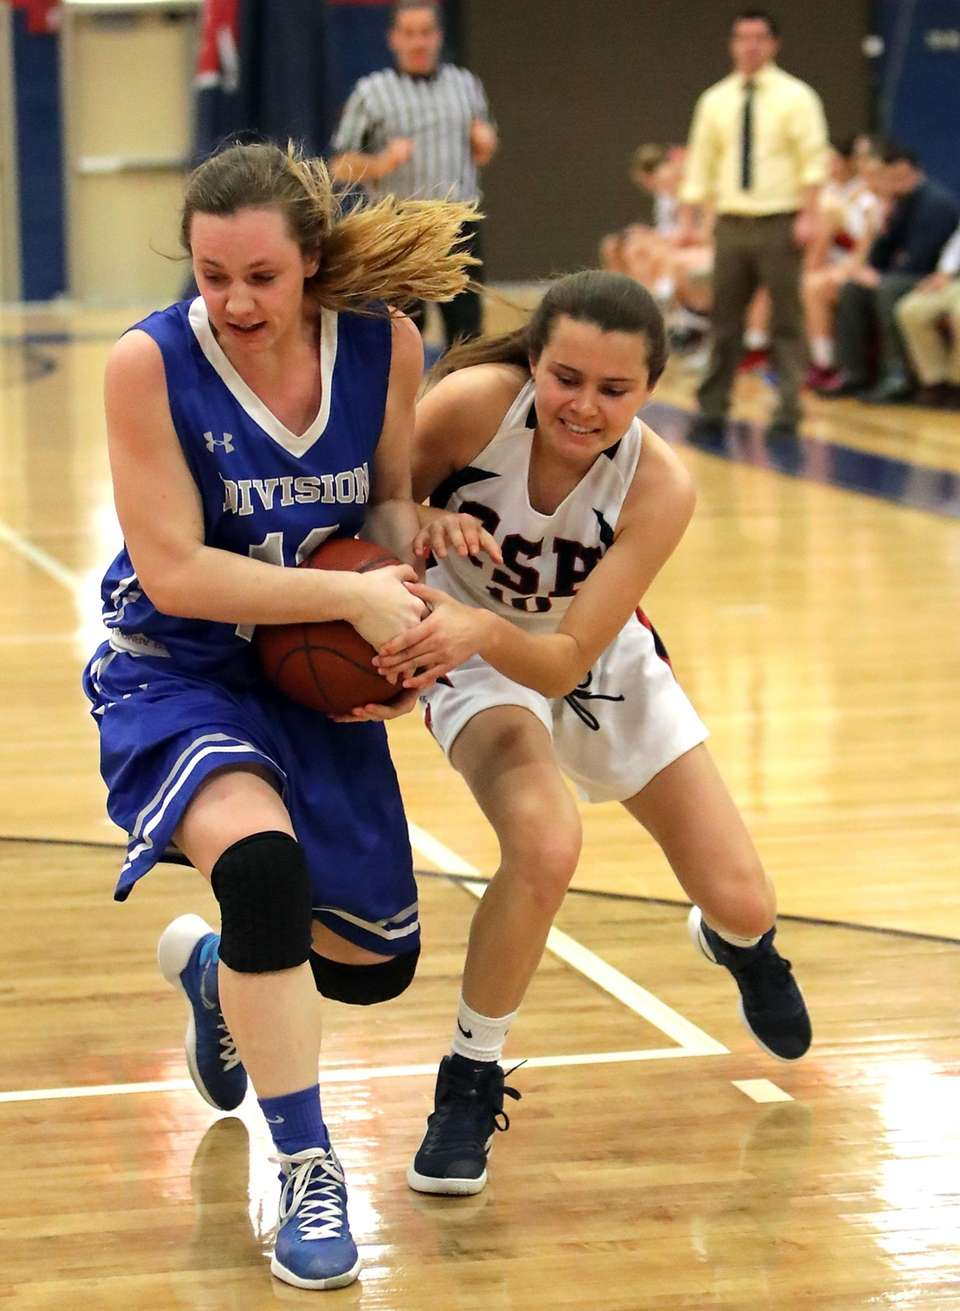 Division's Erin McCauley (12) strips the ball from